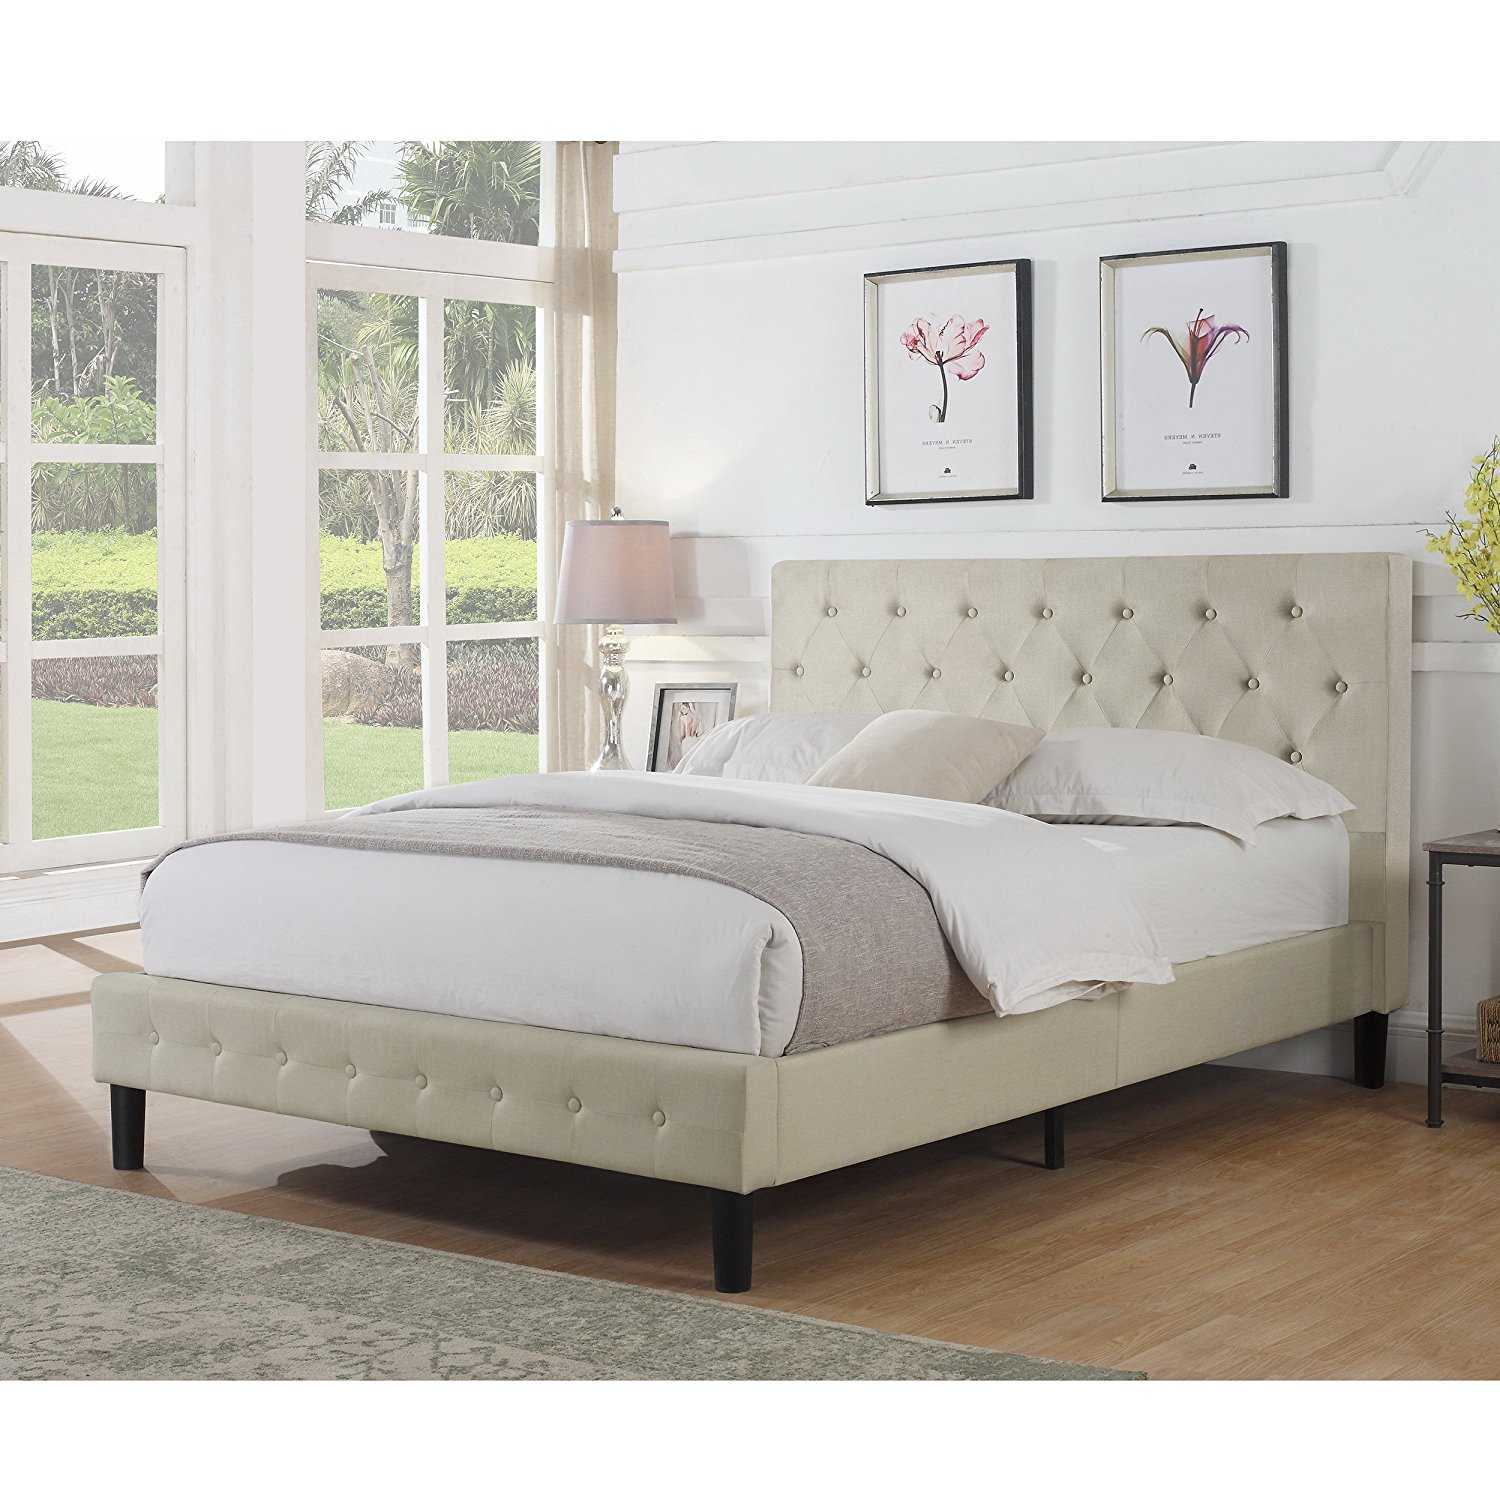 Alton Furniture Alfonso Tufted Upholstered Panel/Platform Bed